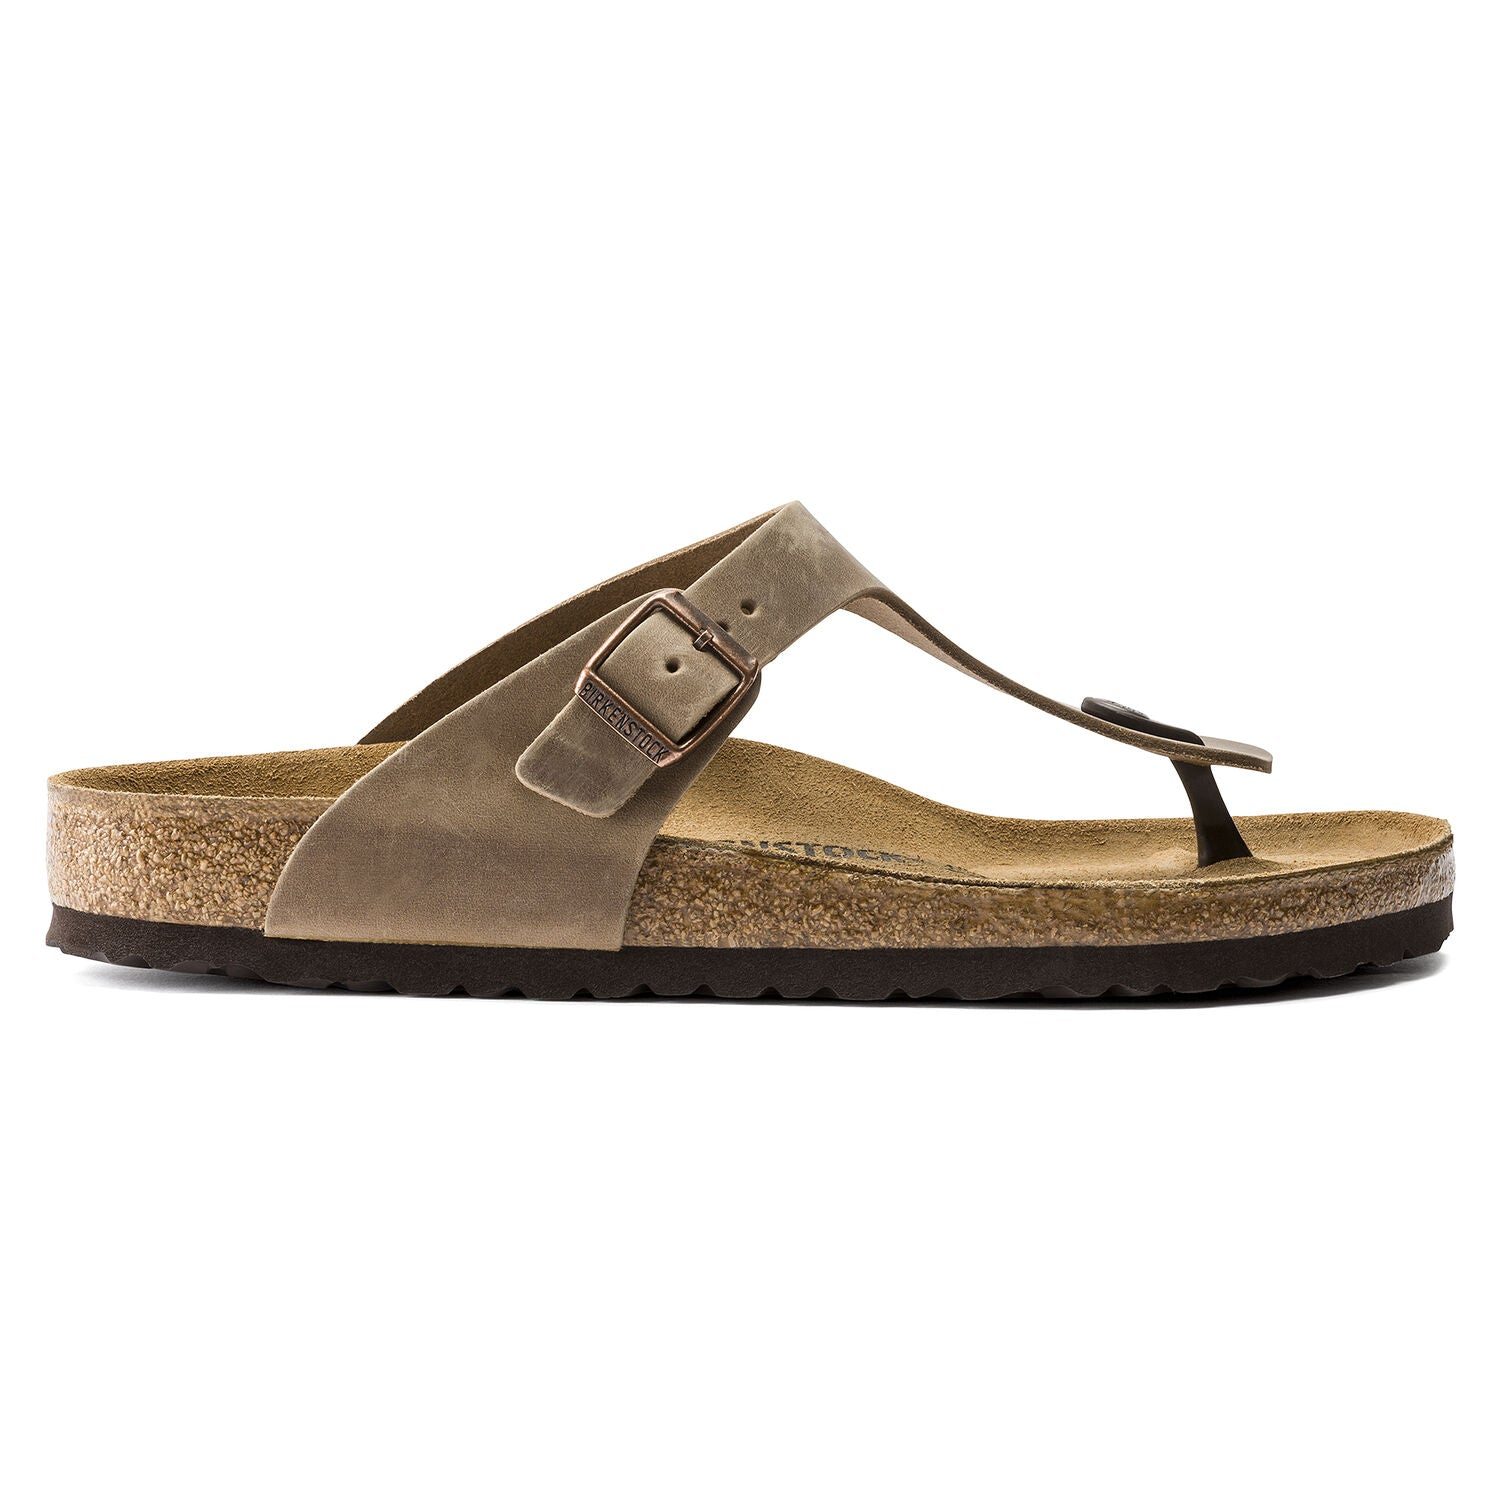 Birkenstock  Gizeh Oiled Leather - Adult's